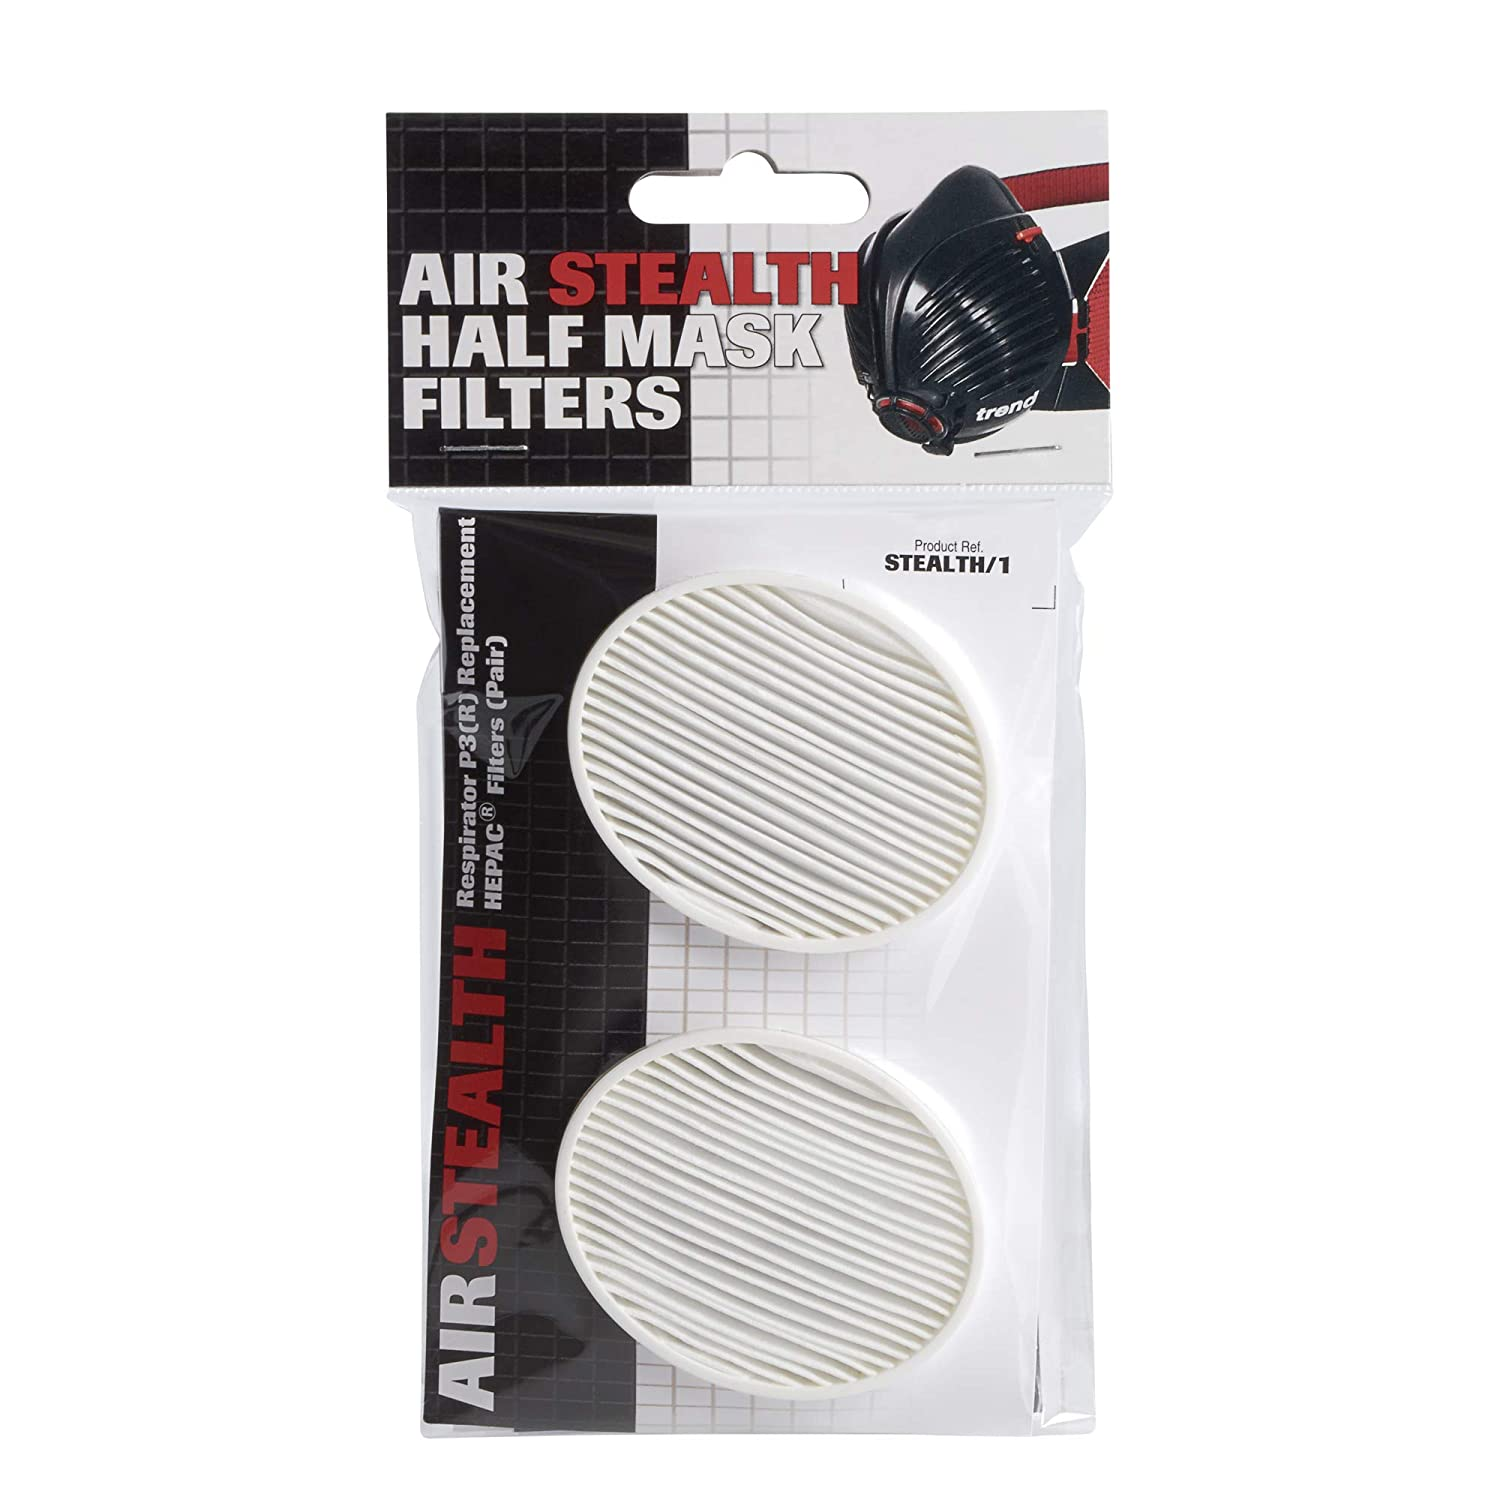 Trend STEALTH//1 AIR STEALTH P3 Filter 1 off pair